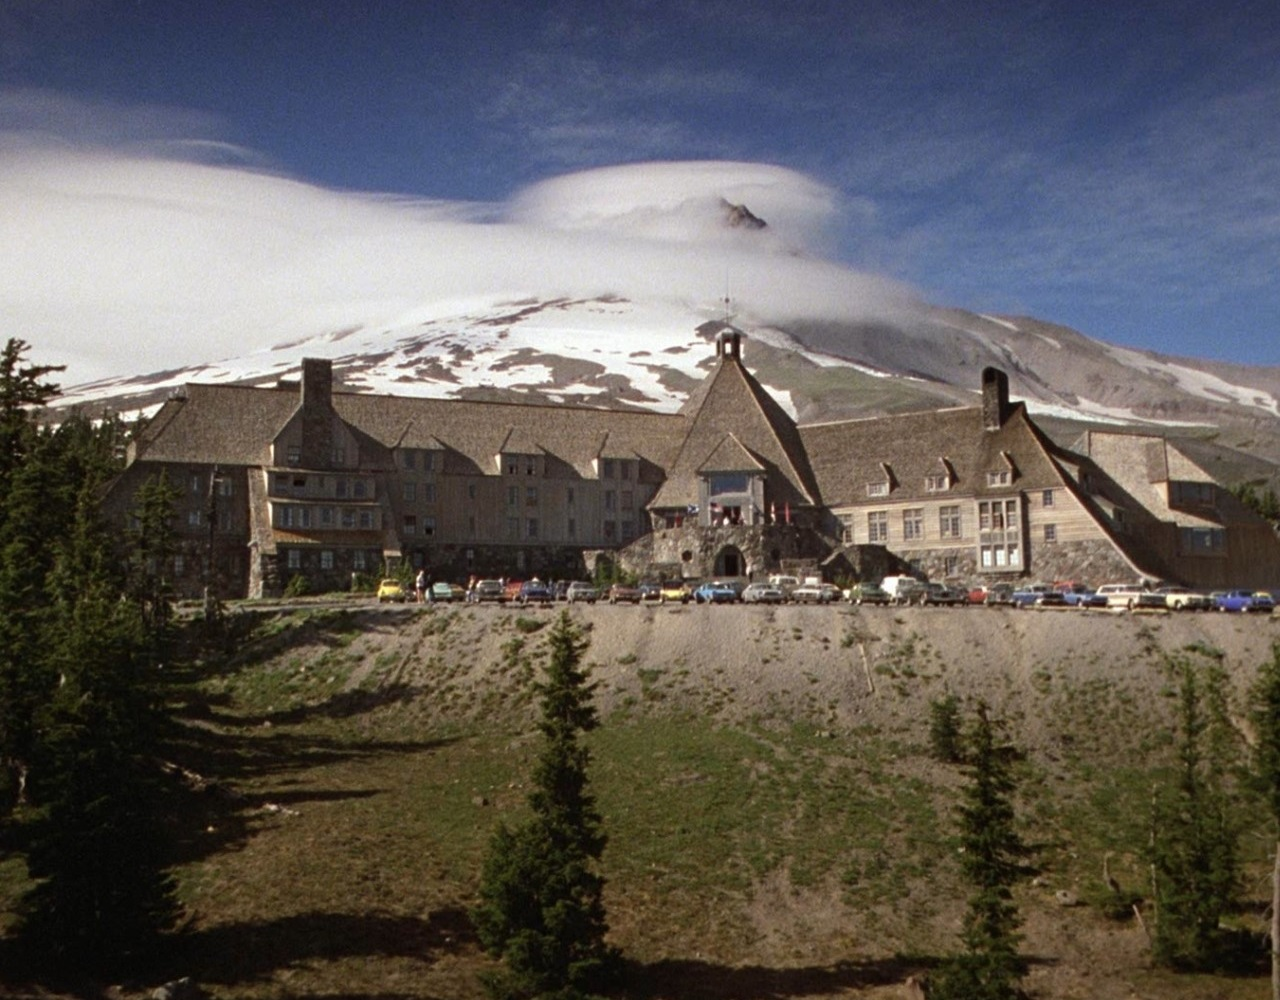 Overlook hotel stephen king wiki fandom powered by wikia - Maison mountain range irving smith jack ...